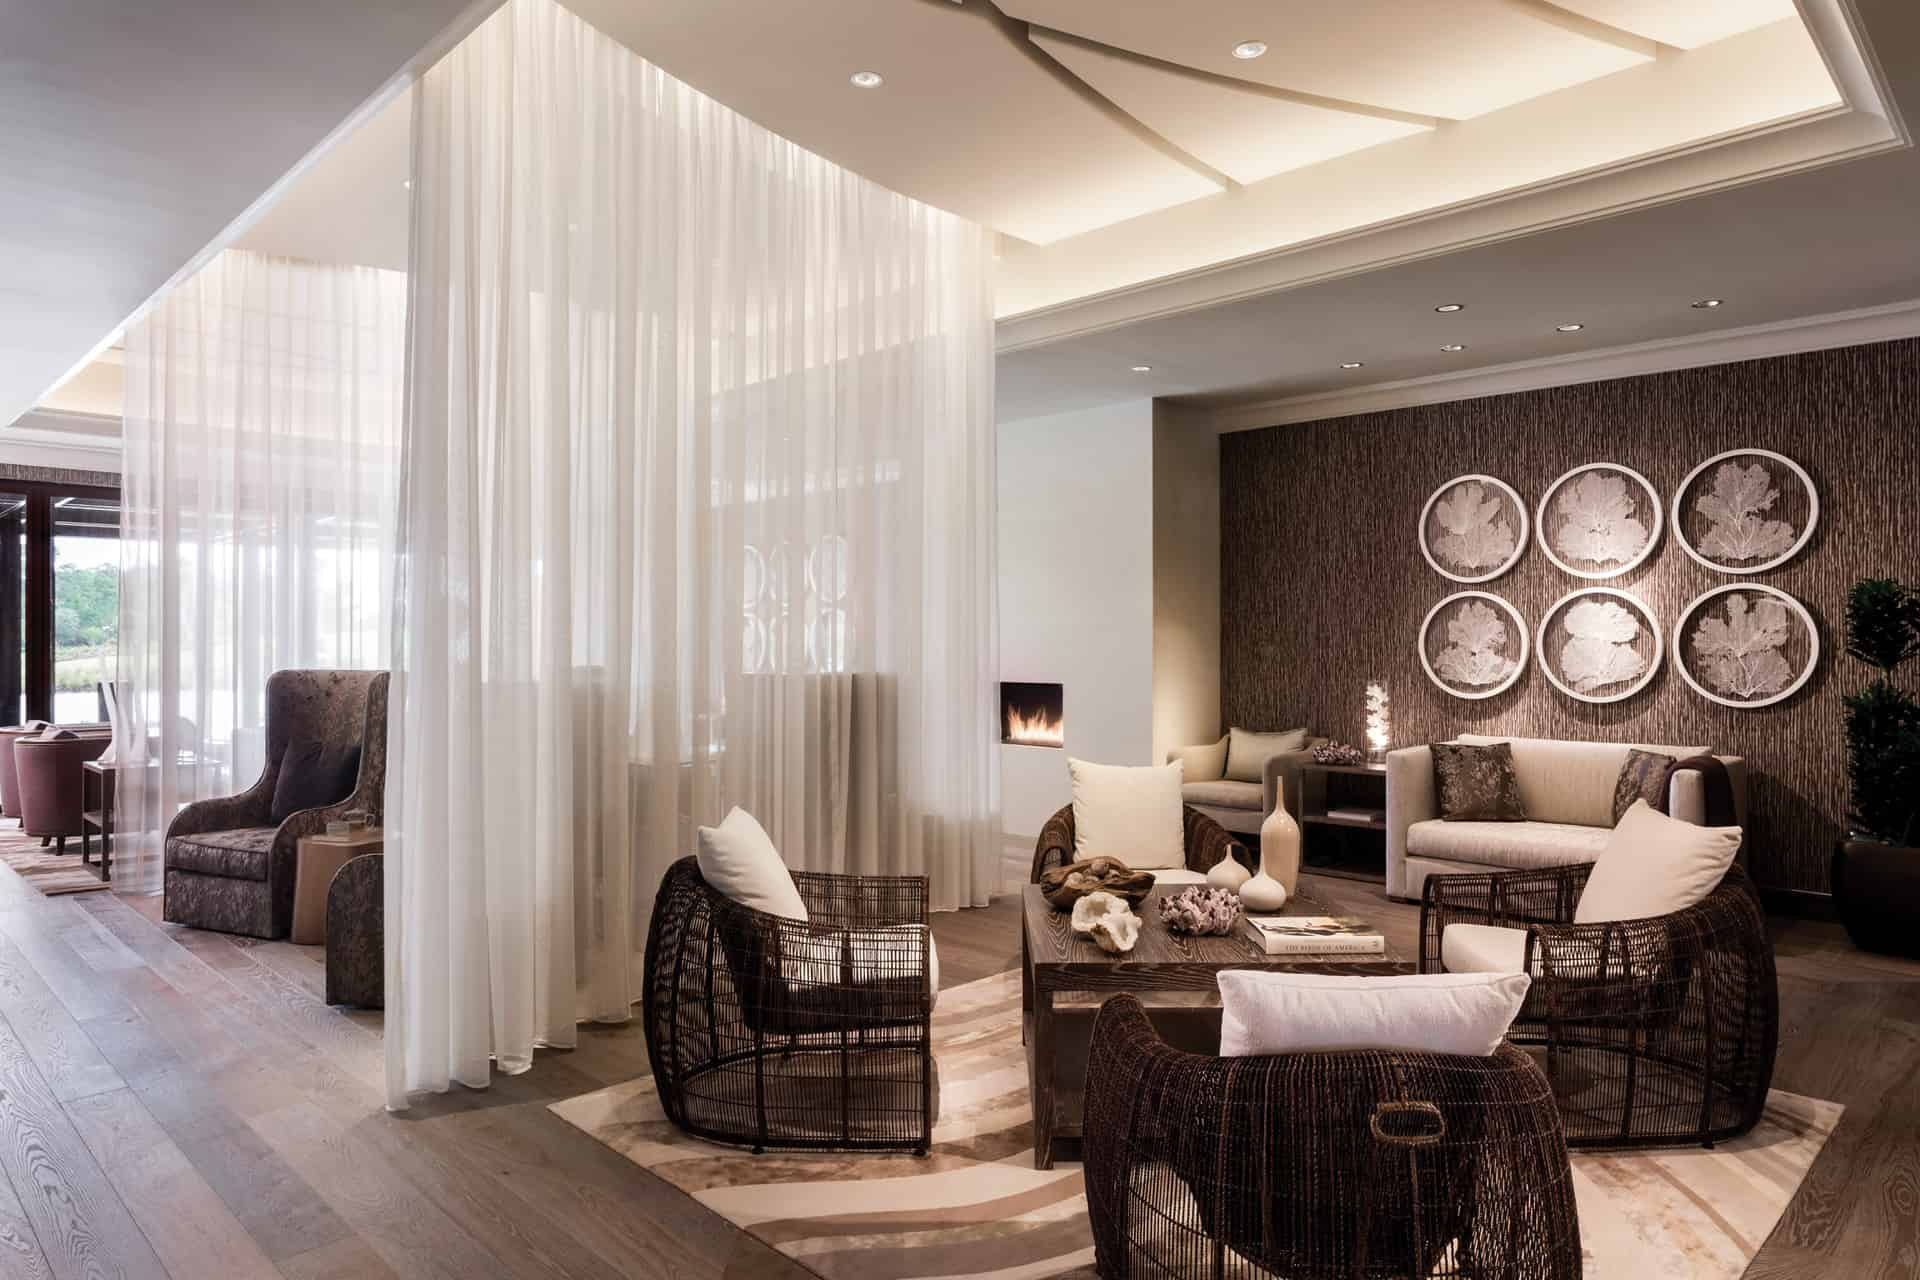 Review of The Spa at Four Seasons Orlando